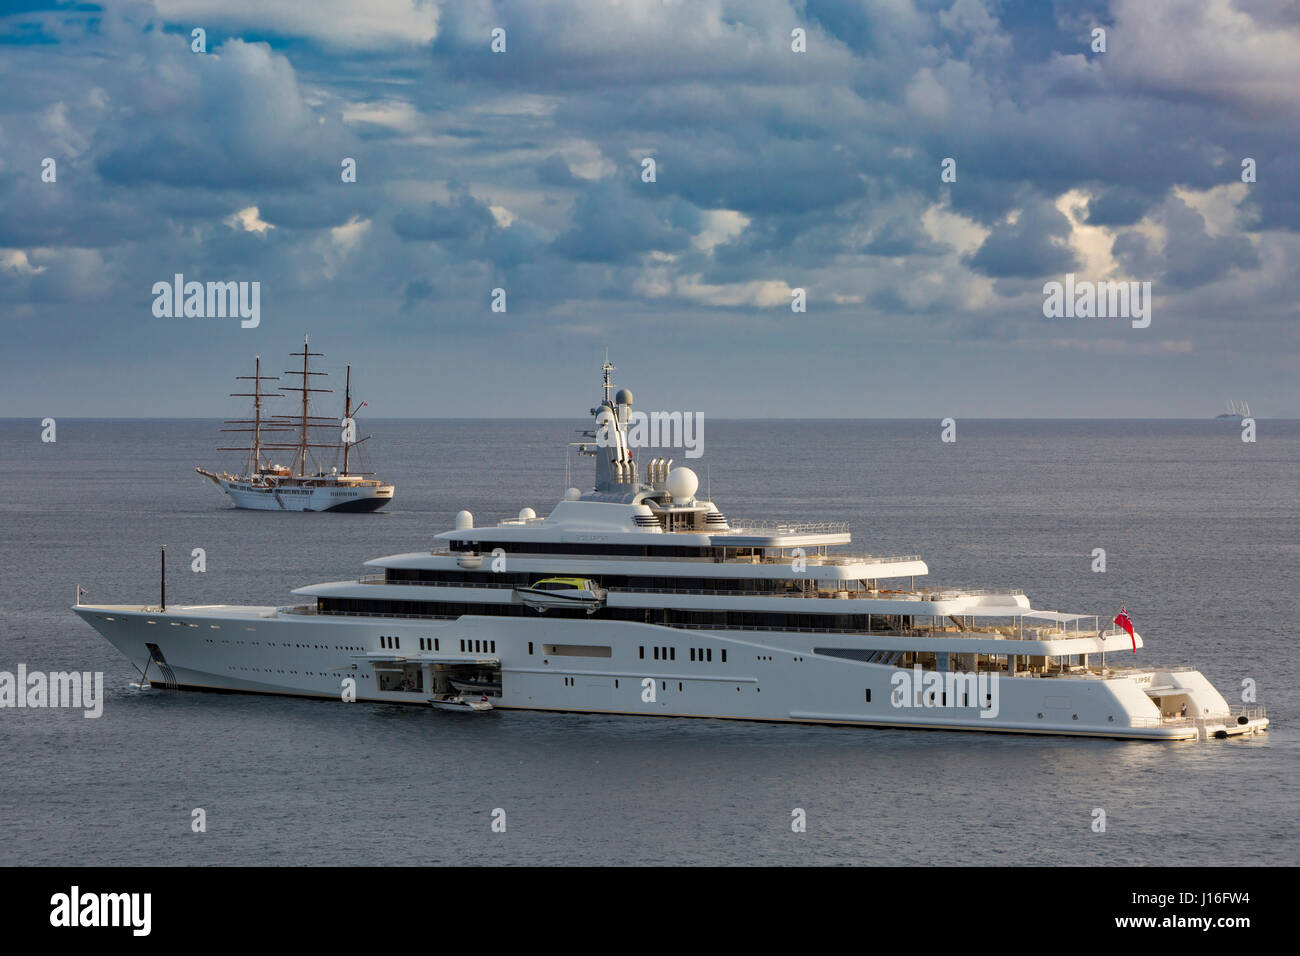 The $650,000 per week super yacht 'Naia' anchored outside the harbor of Gustavia, St Barths, French West - Stock Image